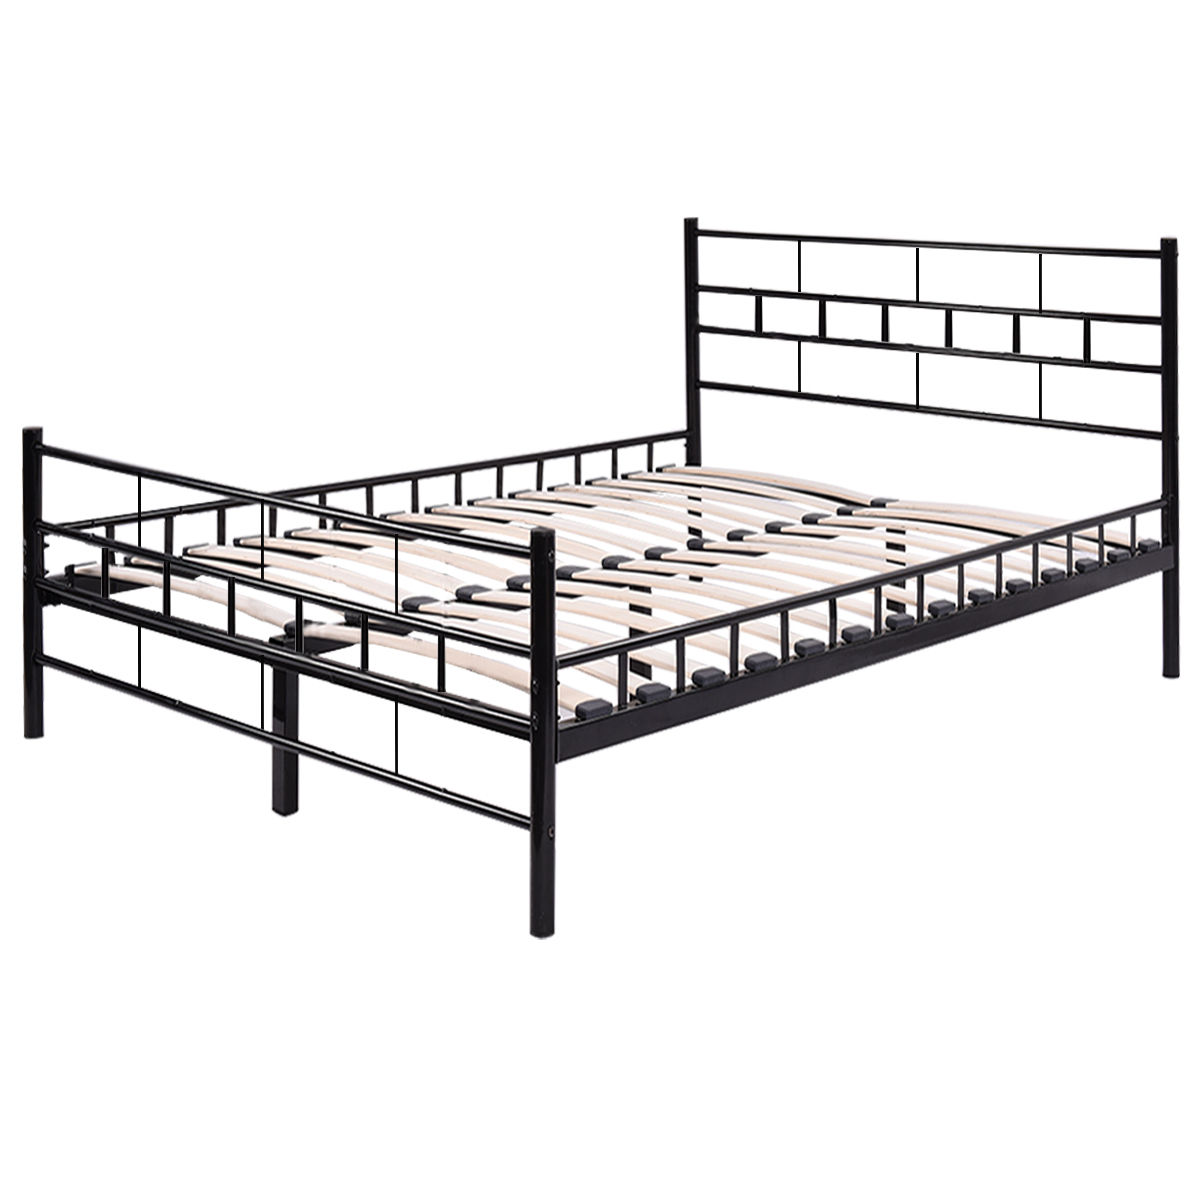 Online Shop for Popular twin black beds from Juegos de cama